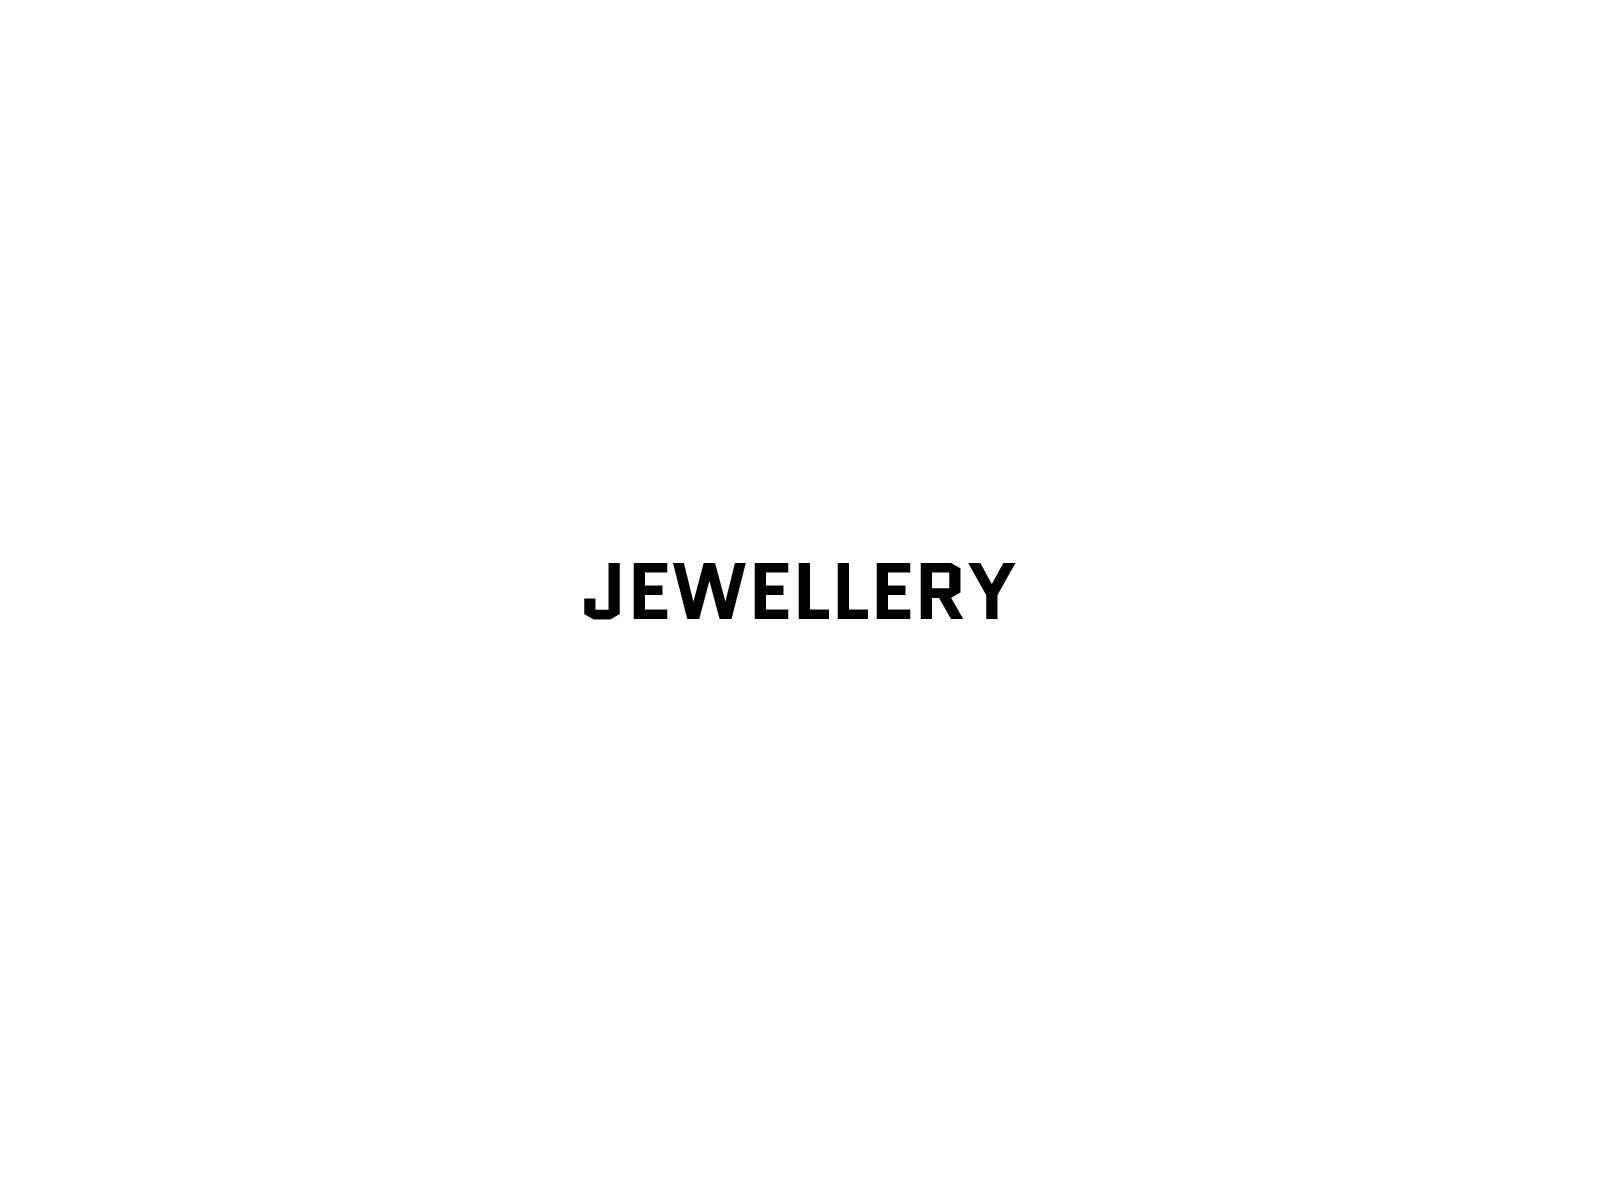 image of Jewellery